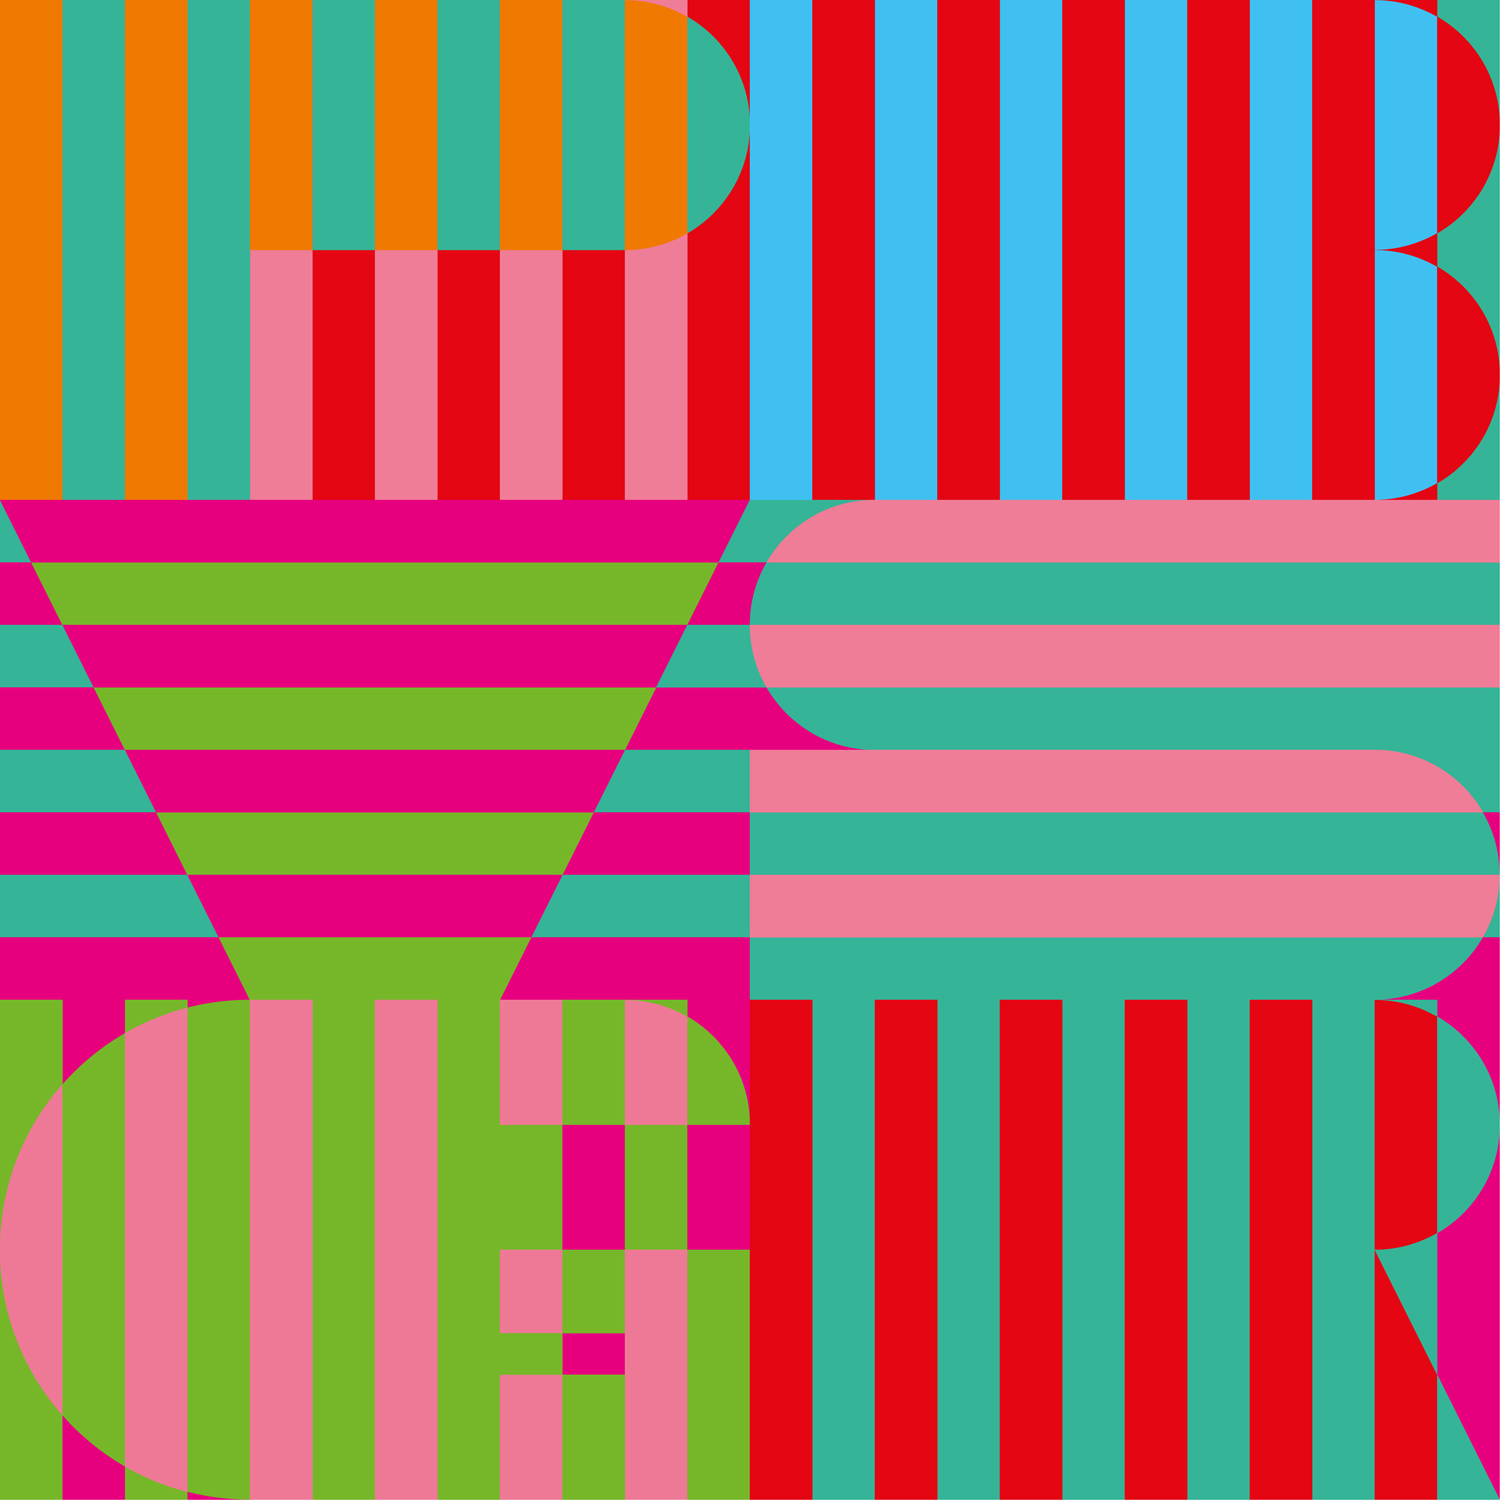 The best albums of 2015 passion of the weiss 31 panda bear panda bear meets the grim reaper malvernweather Gallery